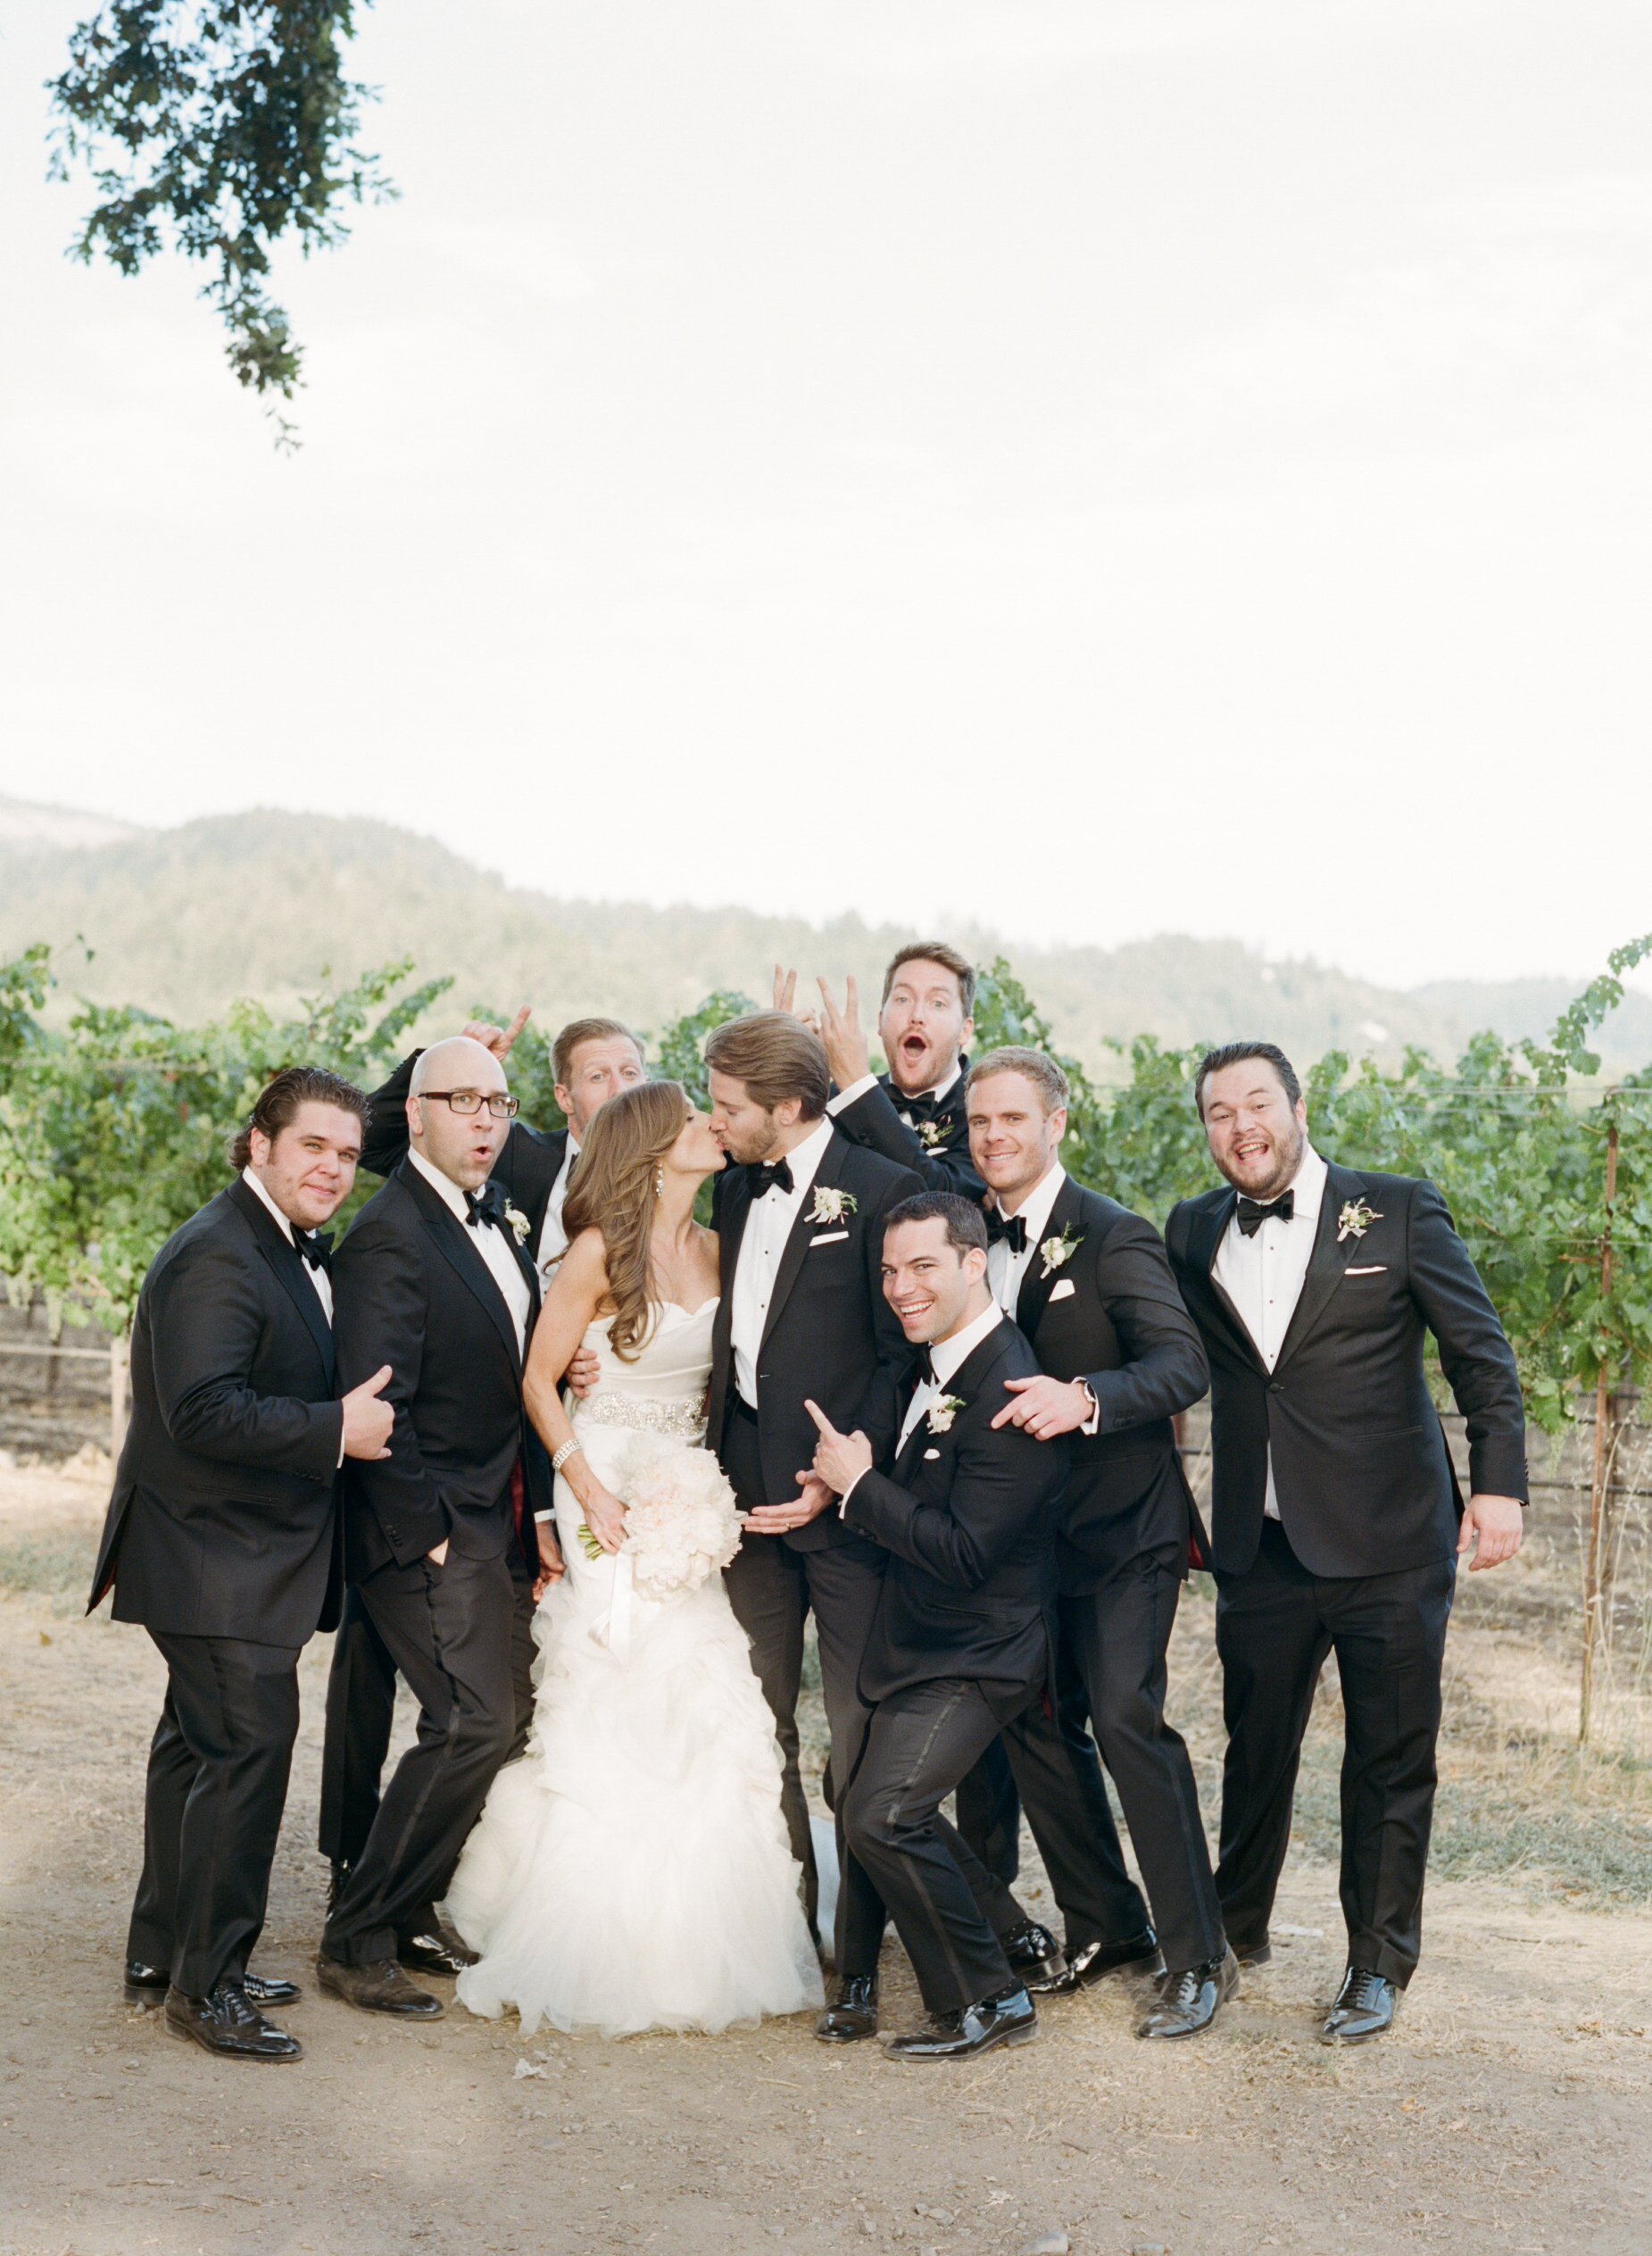 Michael kisses his bride, surrounded by his goofy groomsmen, posing for a silly shot; photo by Sylvie Gil